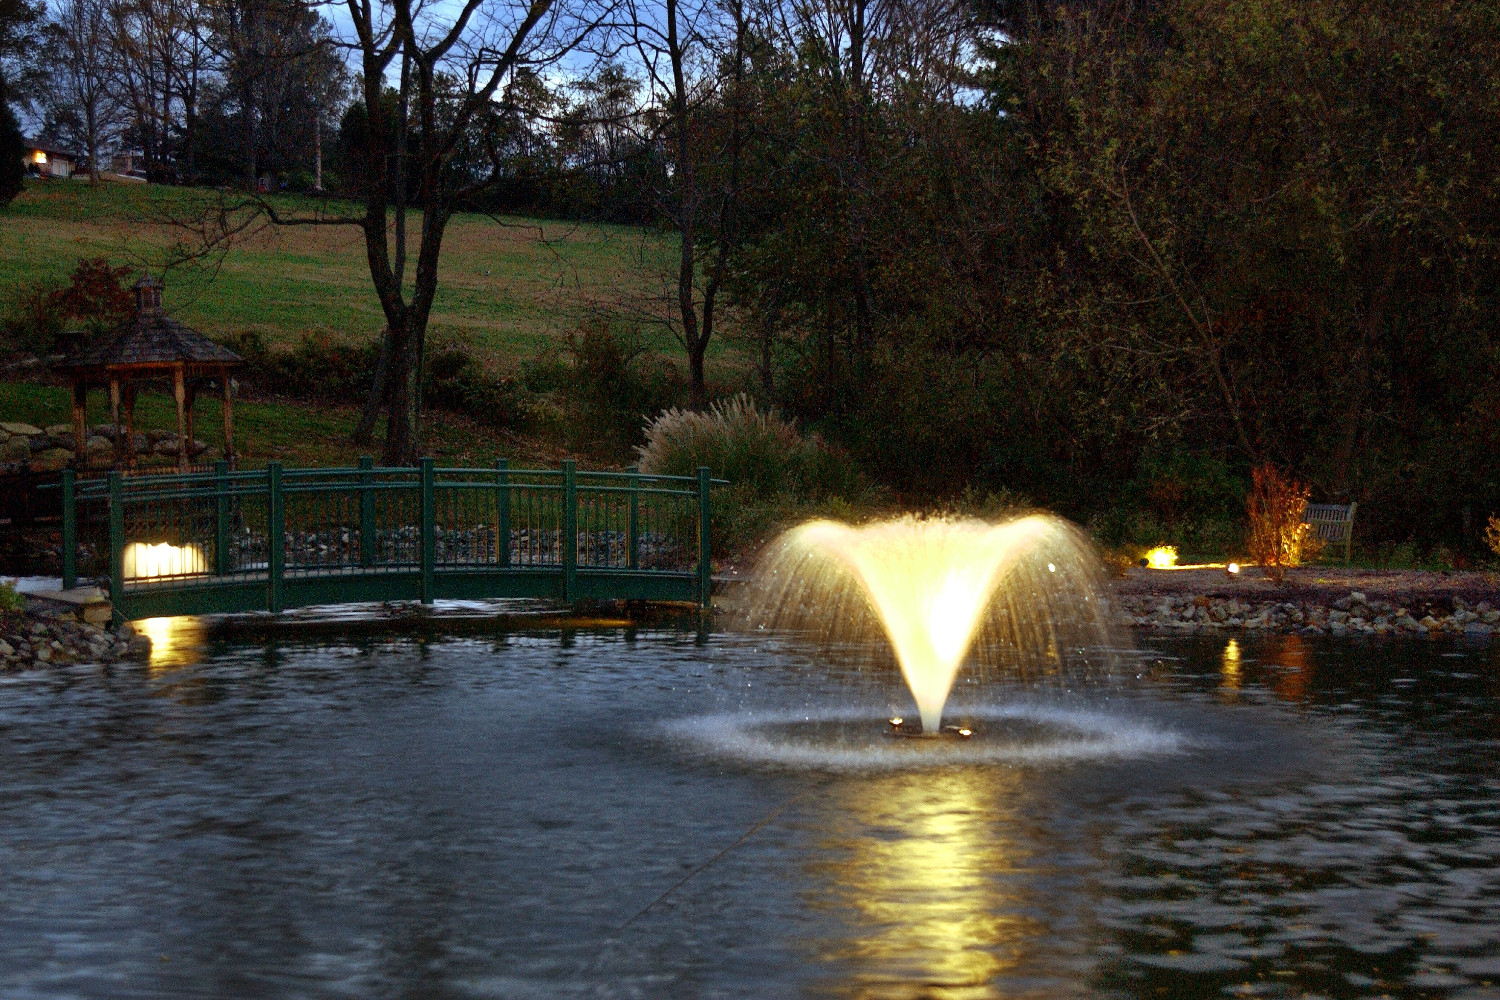 One of Otterbine's Aerating Fountains in a beautiful park at night